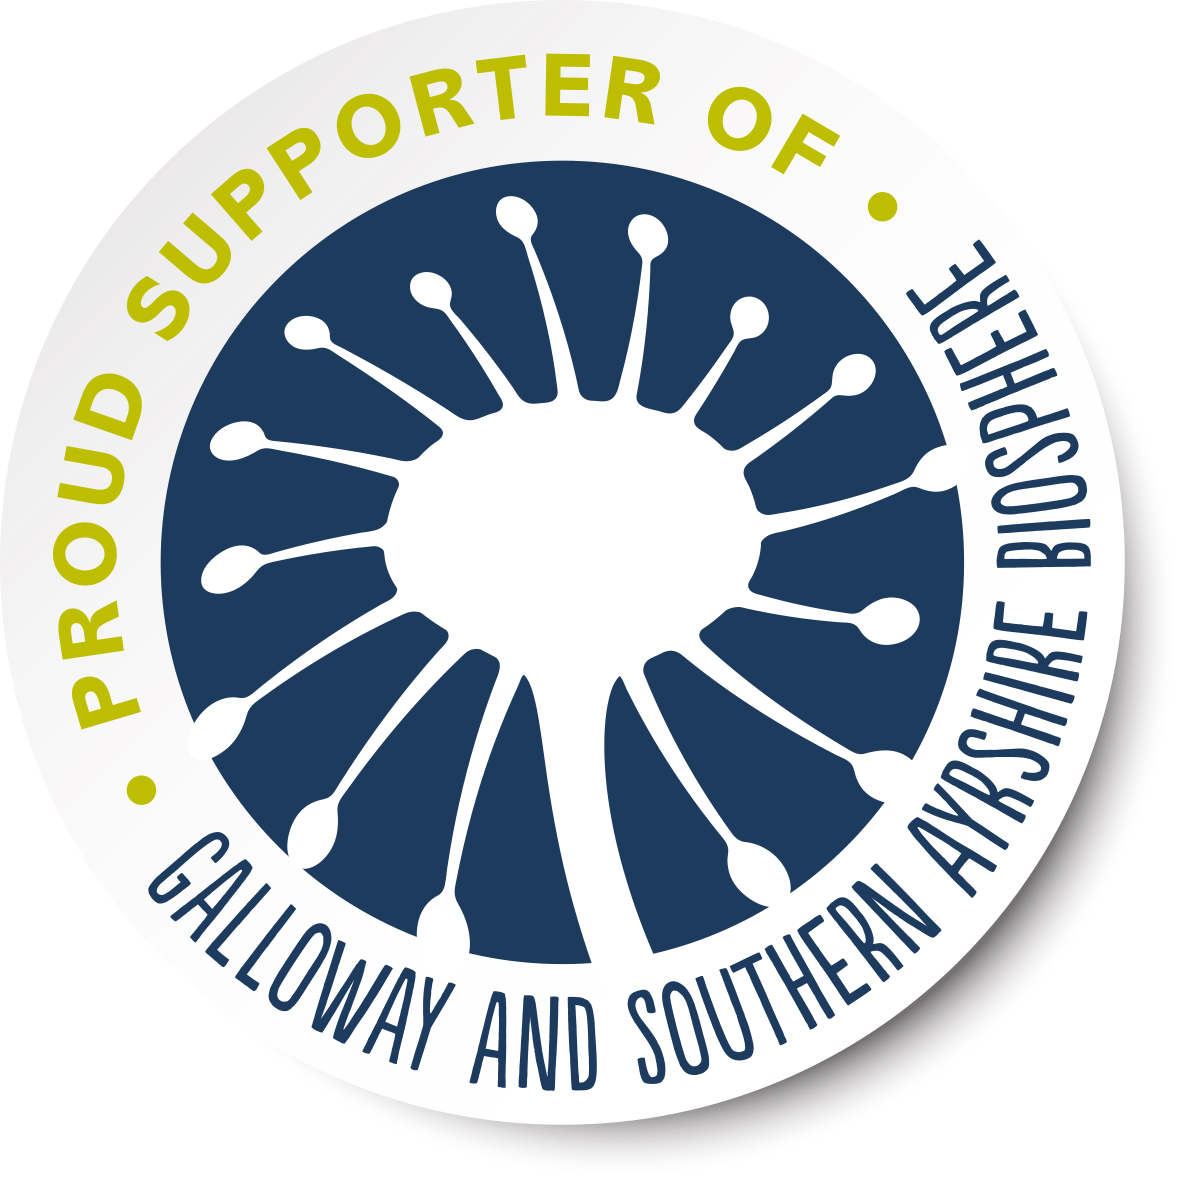 Biosphere Charter Proud Supporter Galloway And Southern Ayrshire Sustainable Development Windpower South Council Why Become A